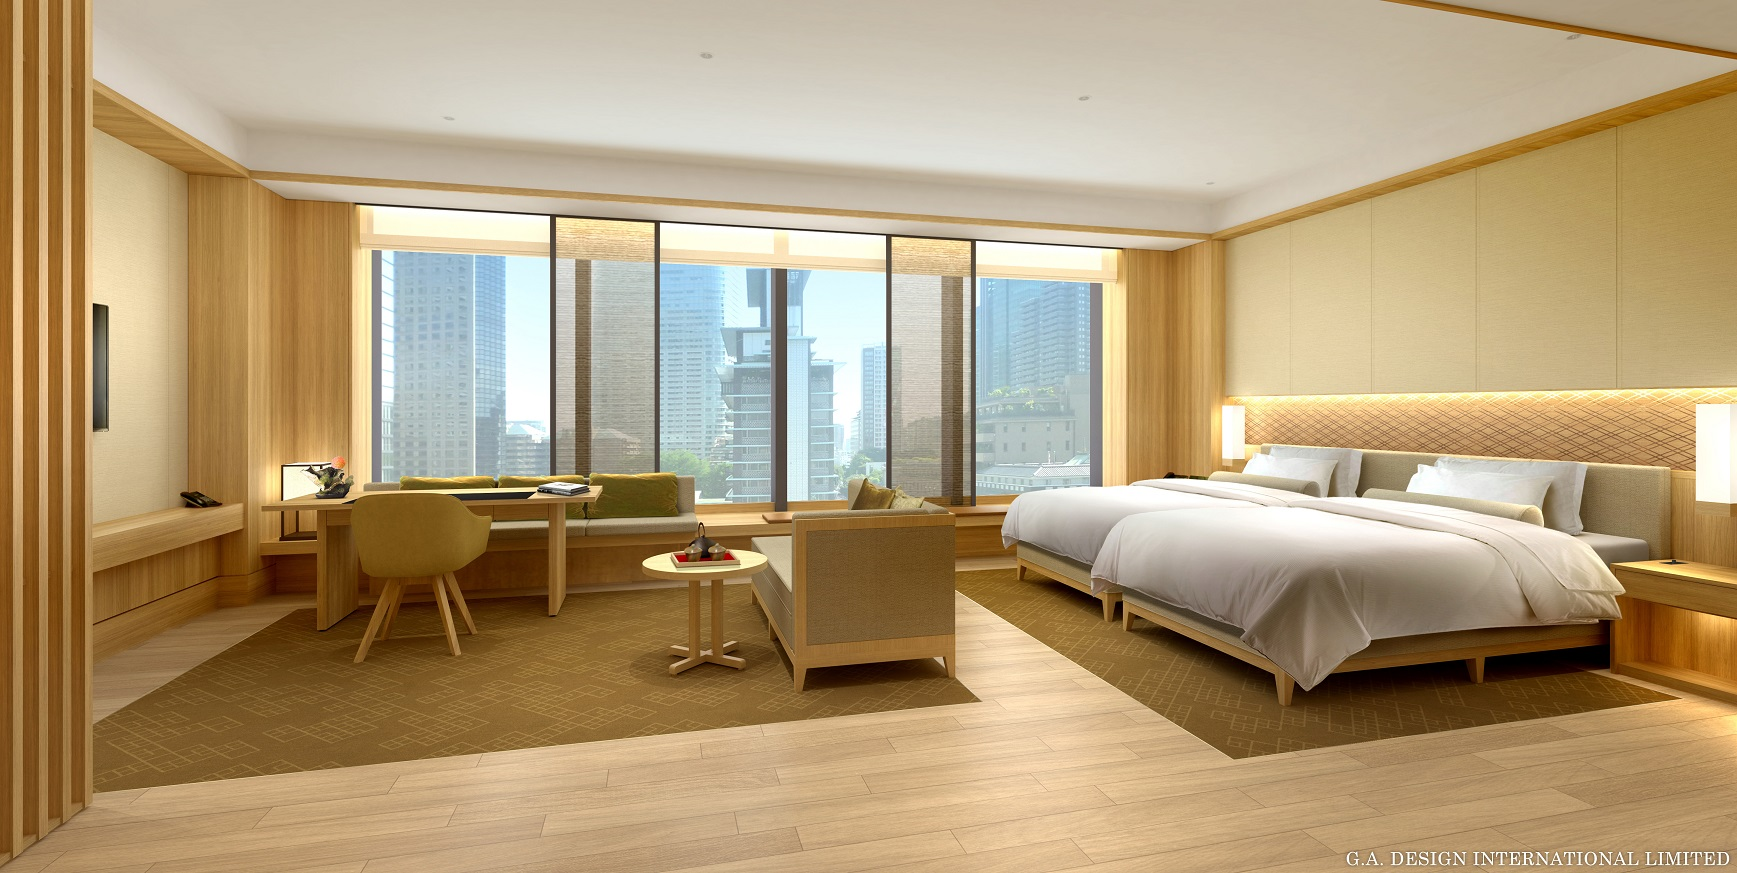 Wanted! Part-Time Cleaning at Brand New Tokyo Hotel★ Pay Rises, Paid Leave, Free Uniform, All Transportation Paid ★